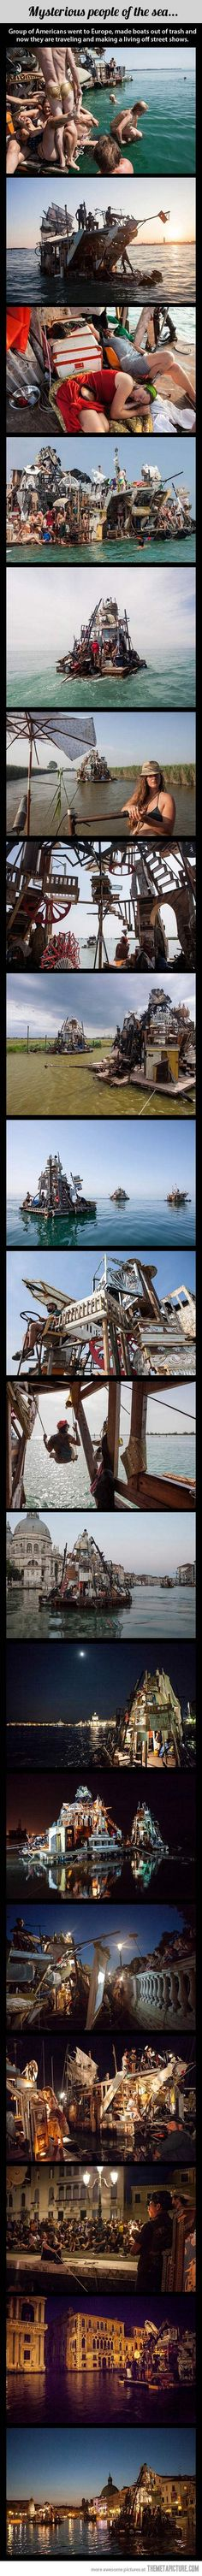 One man's trash is another man's boat…take this idea but have houses, castles or tree houses floating